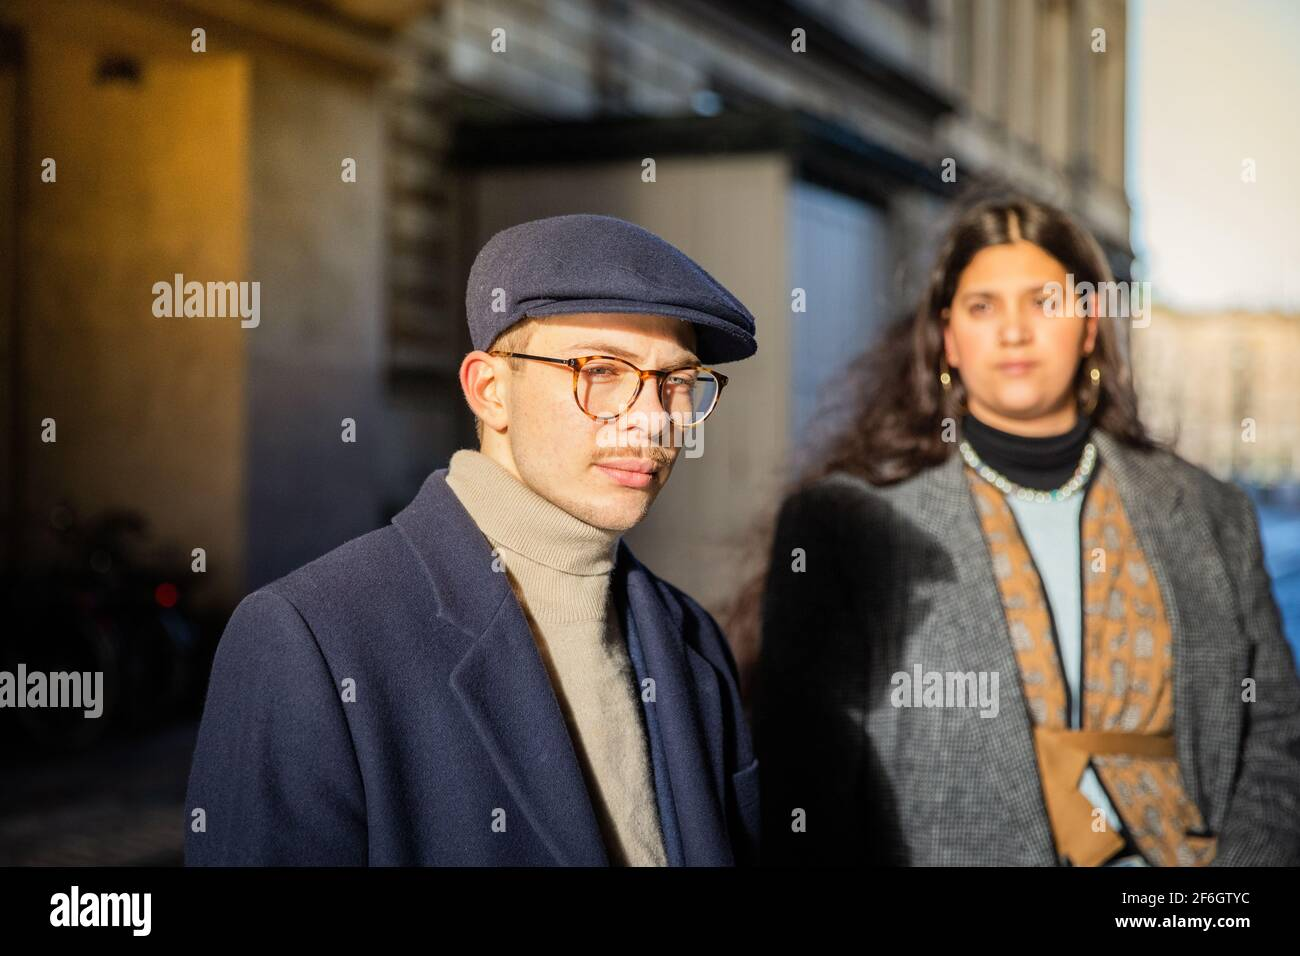 Portrait of a serious and elegant young guy wearing a flat cap. Her friend is out of focus behind. Youth and diversity concept Stock Photo